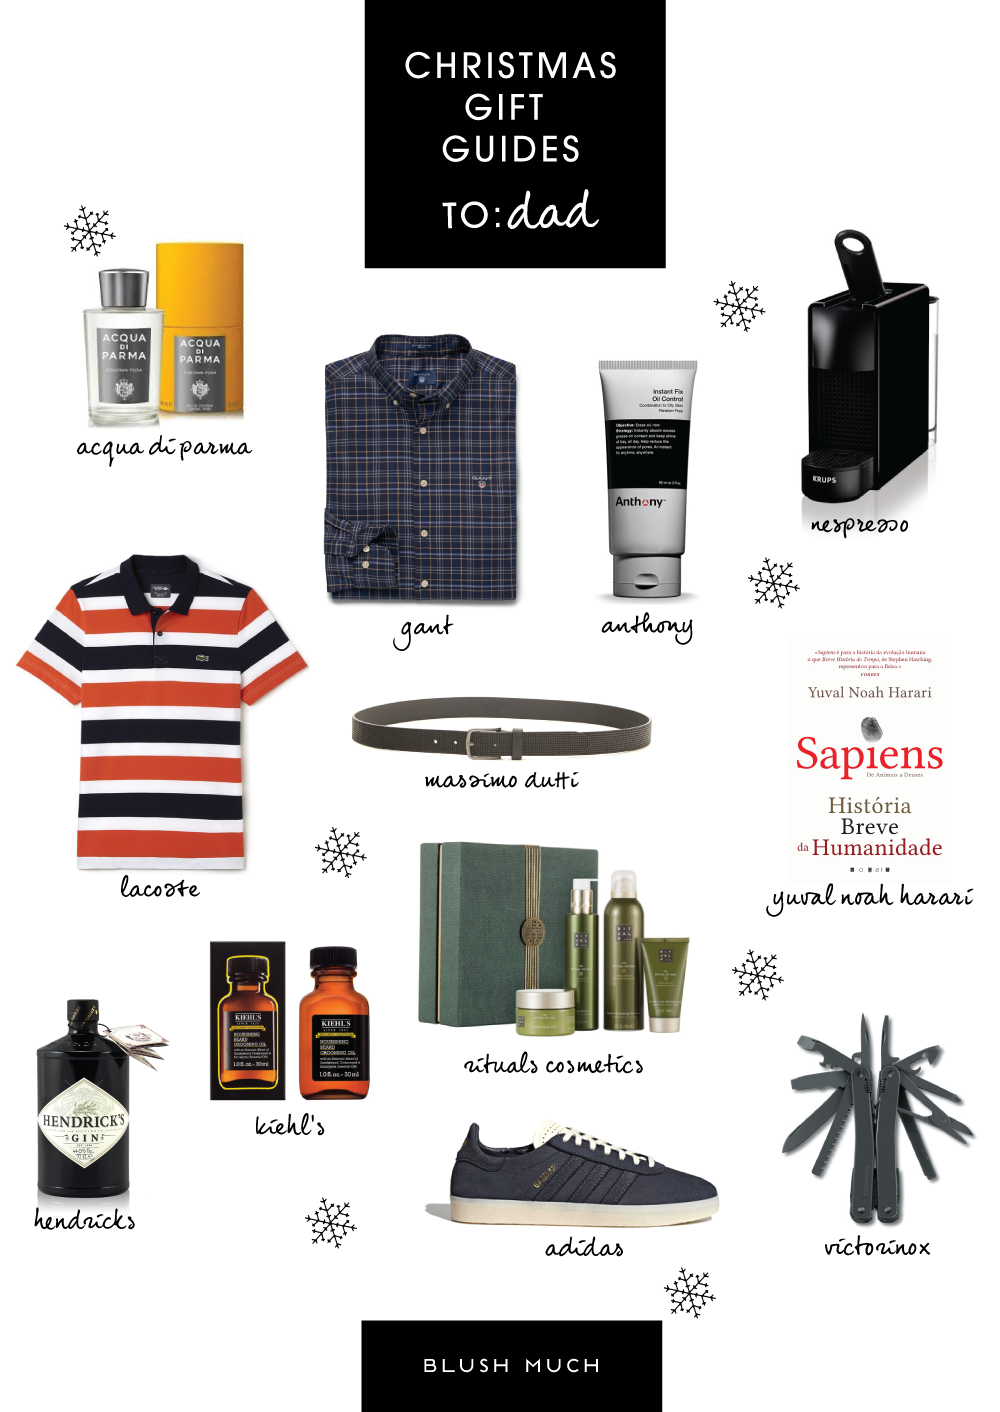 christmas gift guides to dad